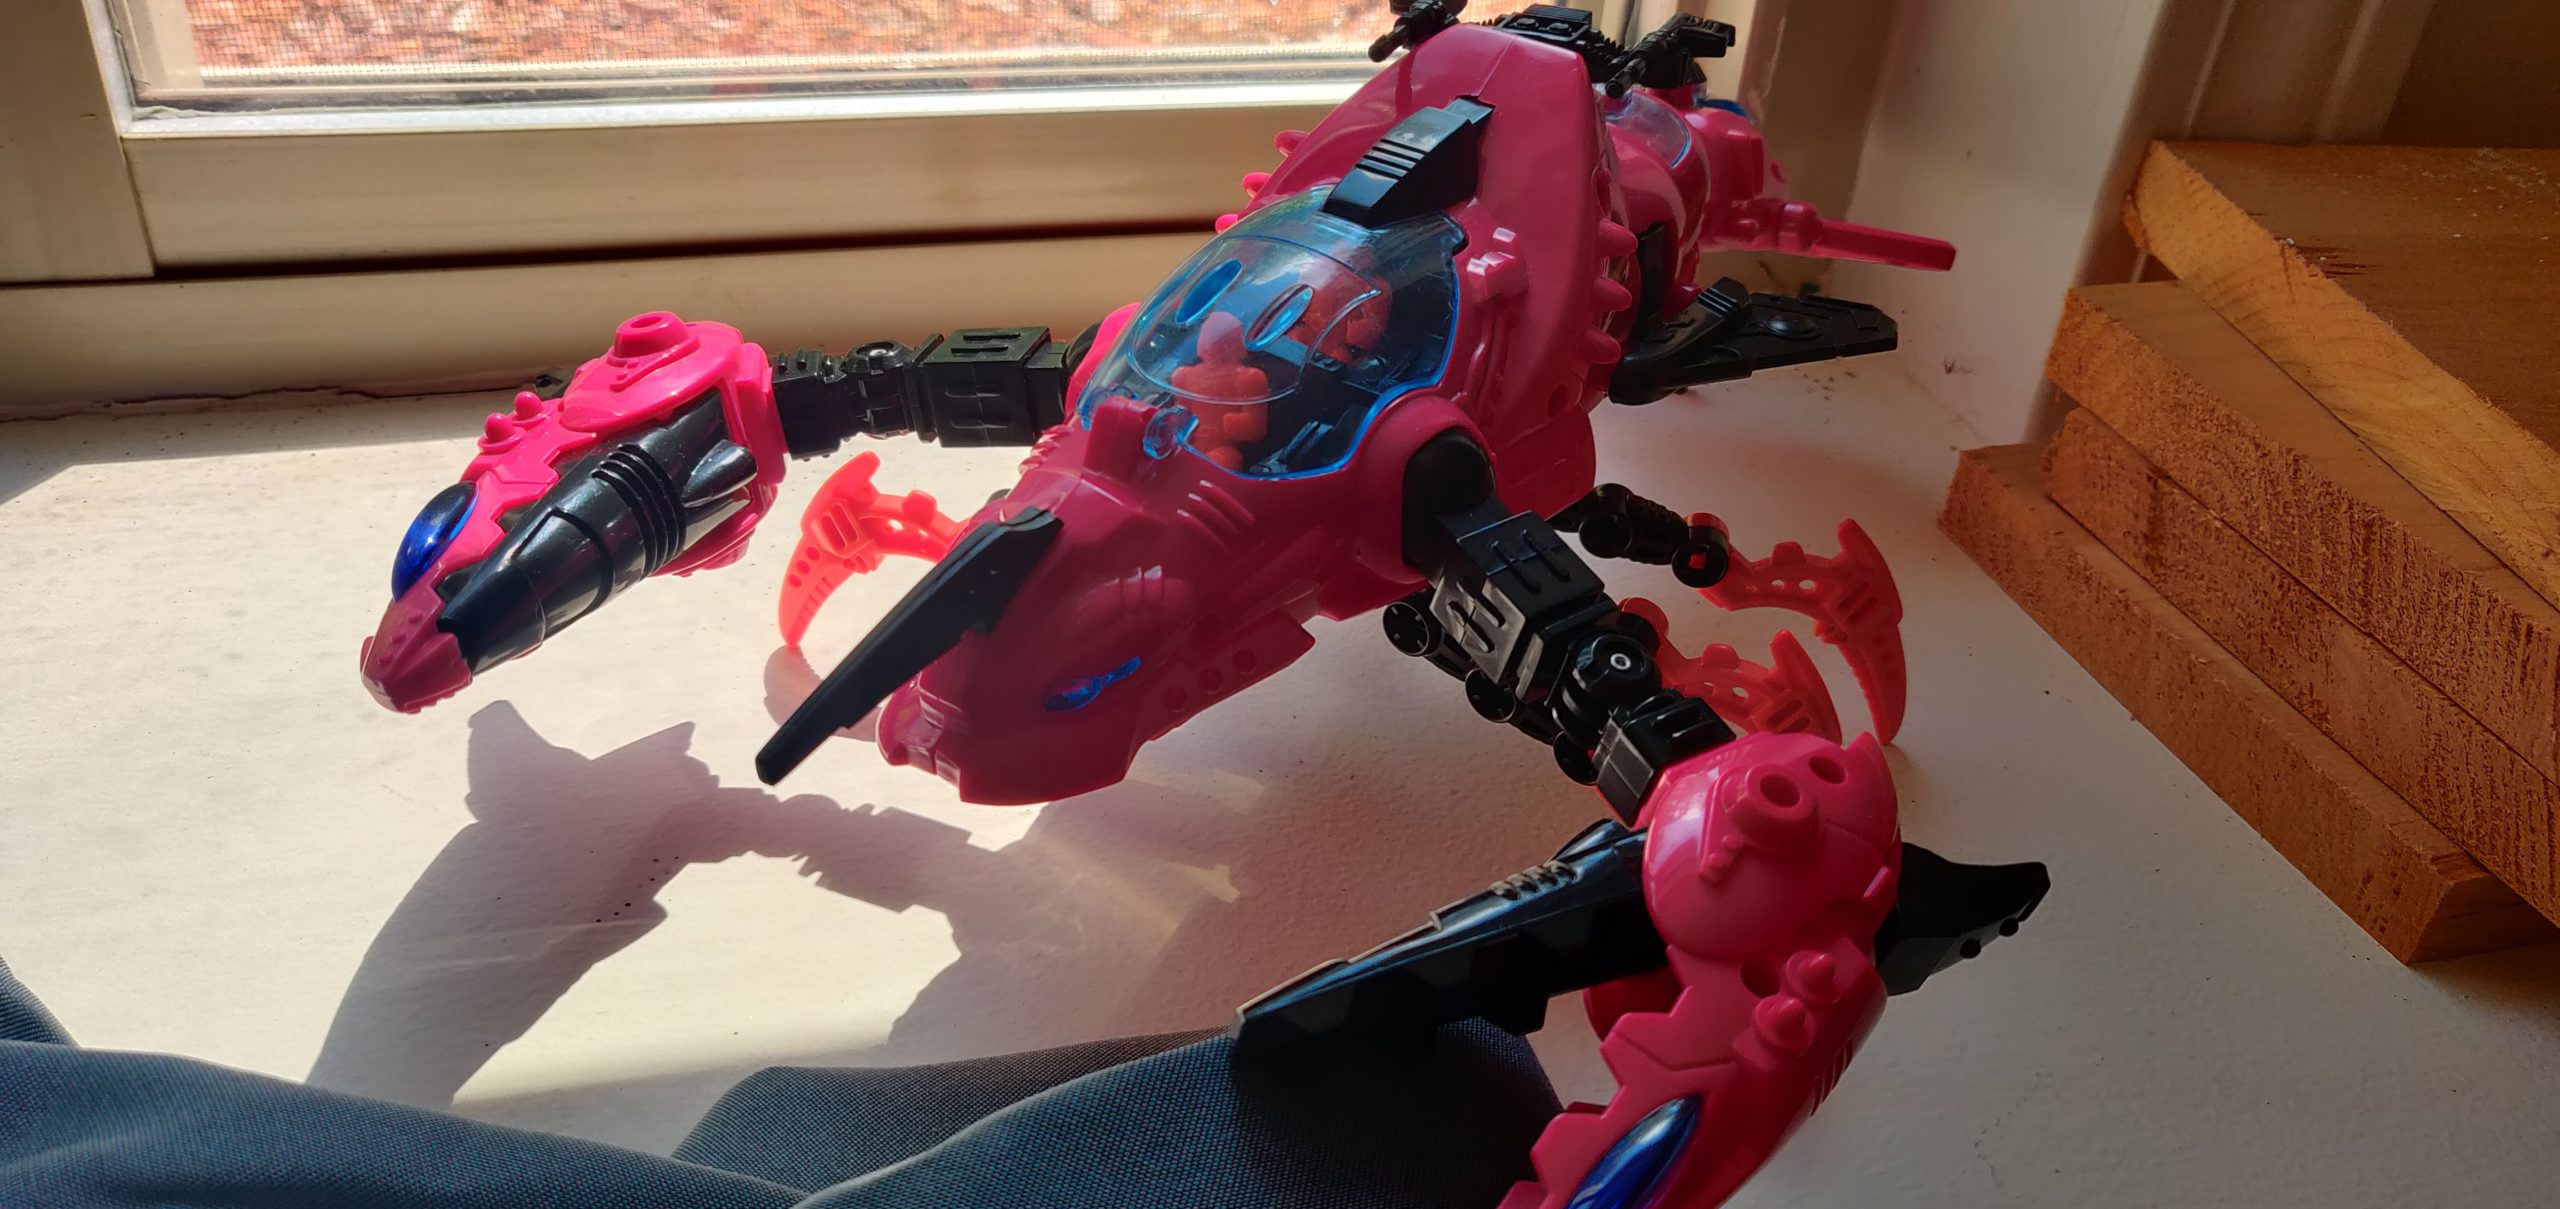 pink robotic lobster toy